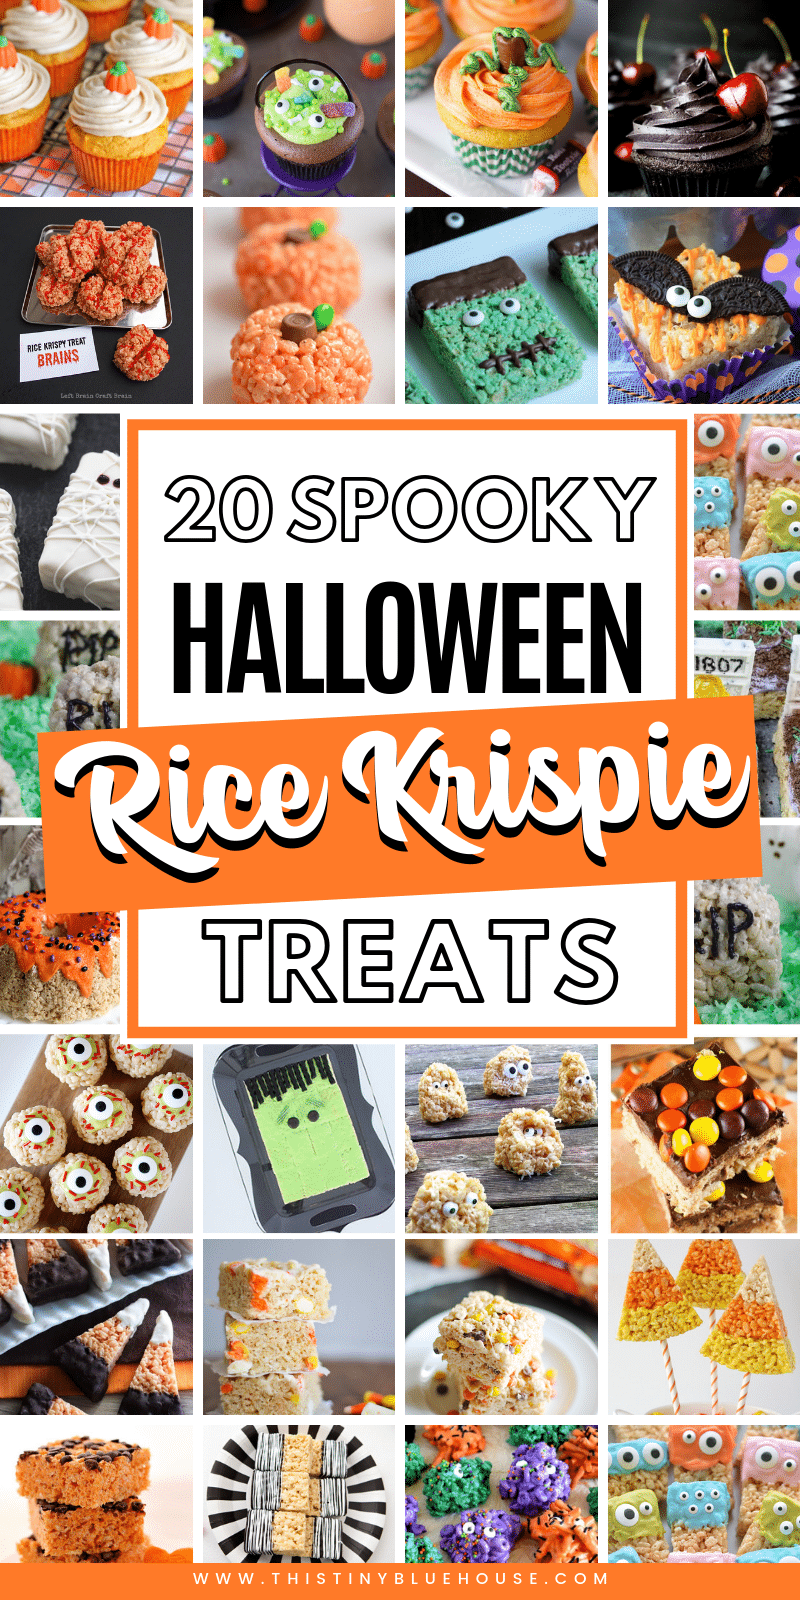 The best collection of Halloween Rice Krispie Treats! Perfect for the kids at school, pot-luck or other Halloween themed get-together. These 20+ spooktacular treats are a great way to celebrate Halloween. #HalloweenFood #HalloweenFoodIdeas #RiceKrispieTreats #HalloweenRiceKrispieTreats #SpookyTreats #SweetHalloweenTreats